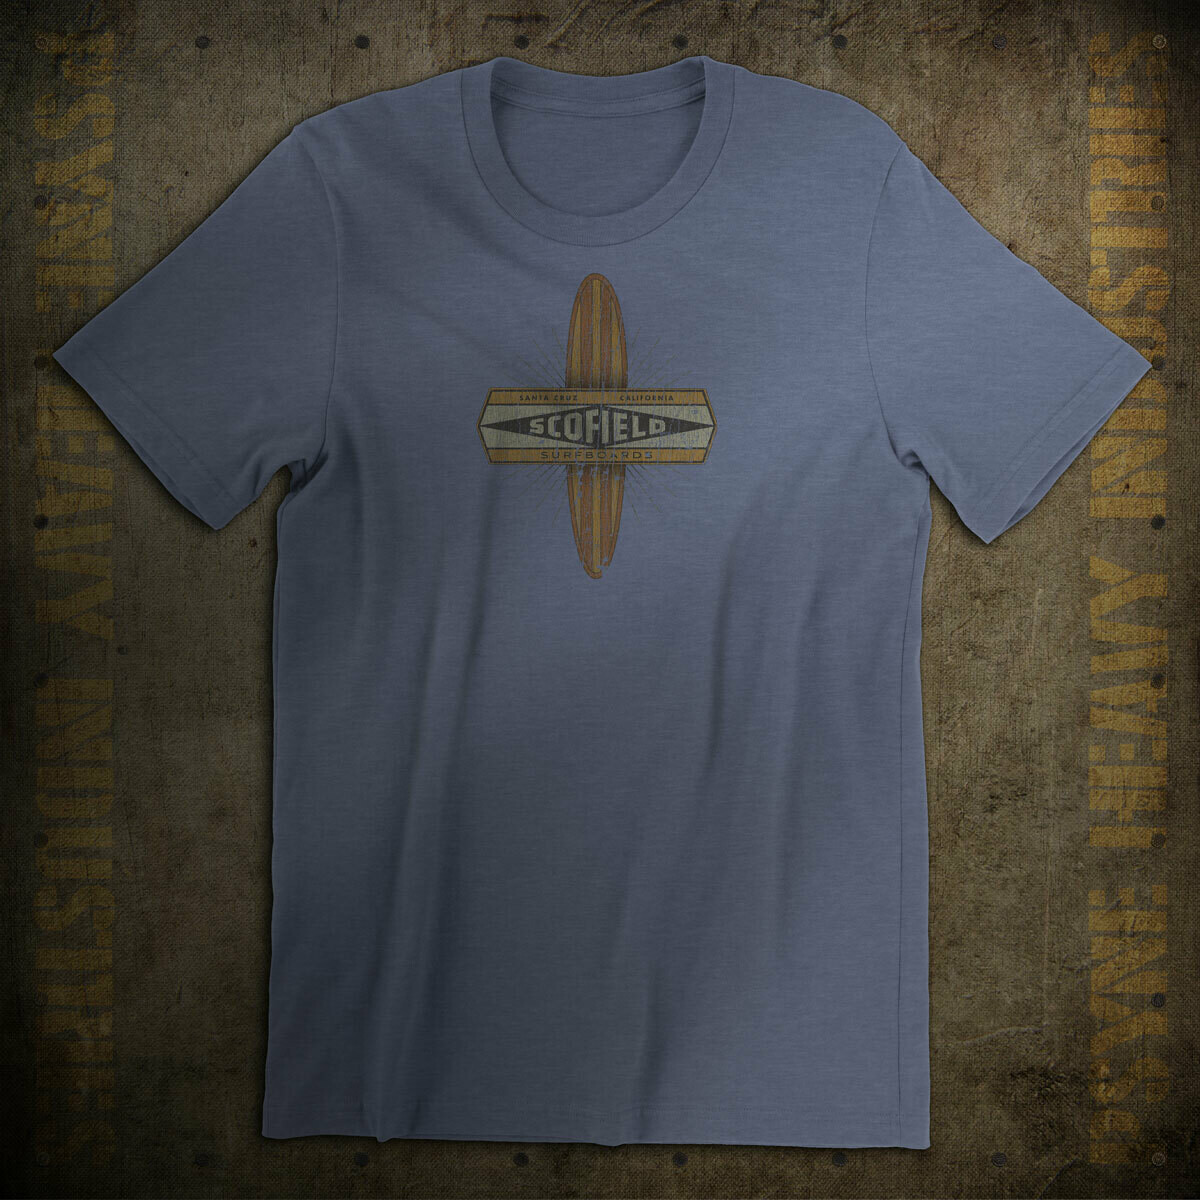 Scofield Surfboards Vintage T-Shirt